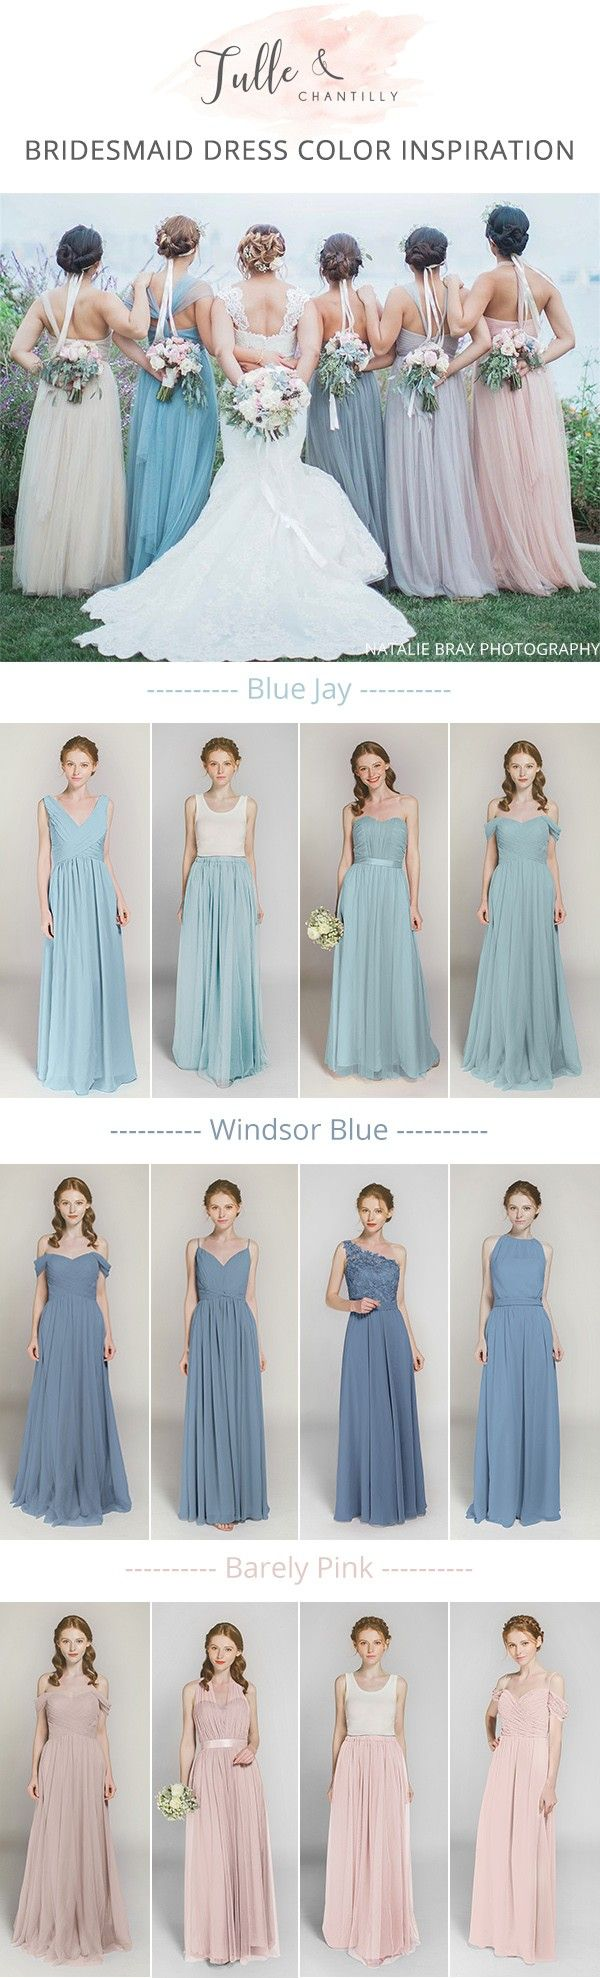 mismatched shades of blue and pink long bridesmaid dresses